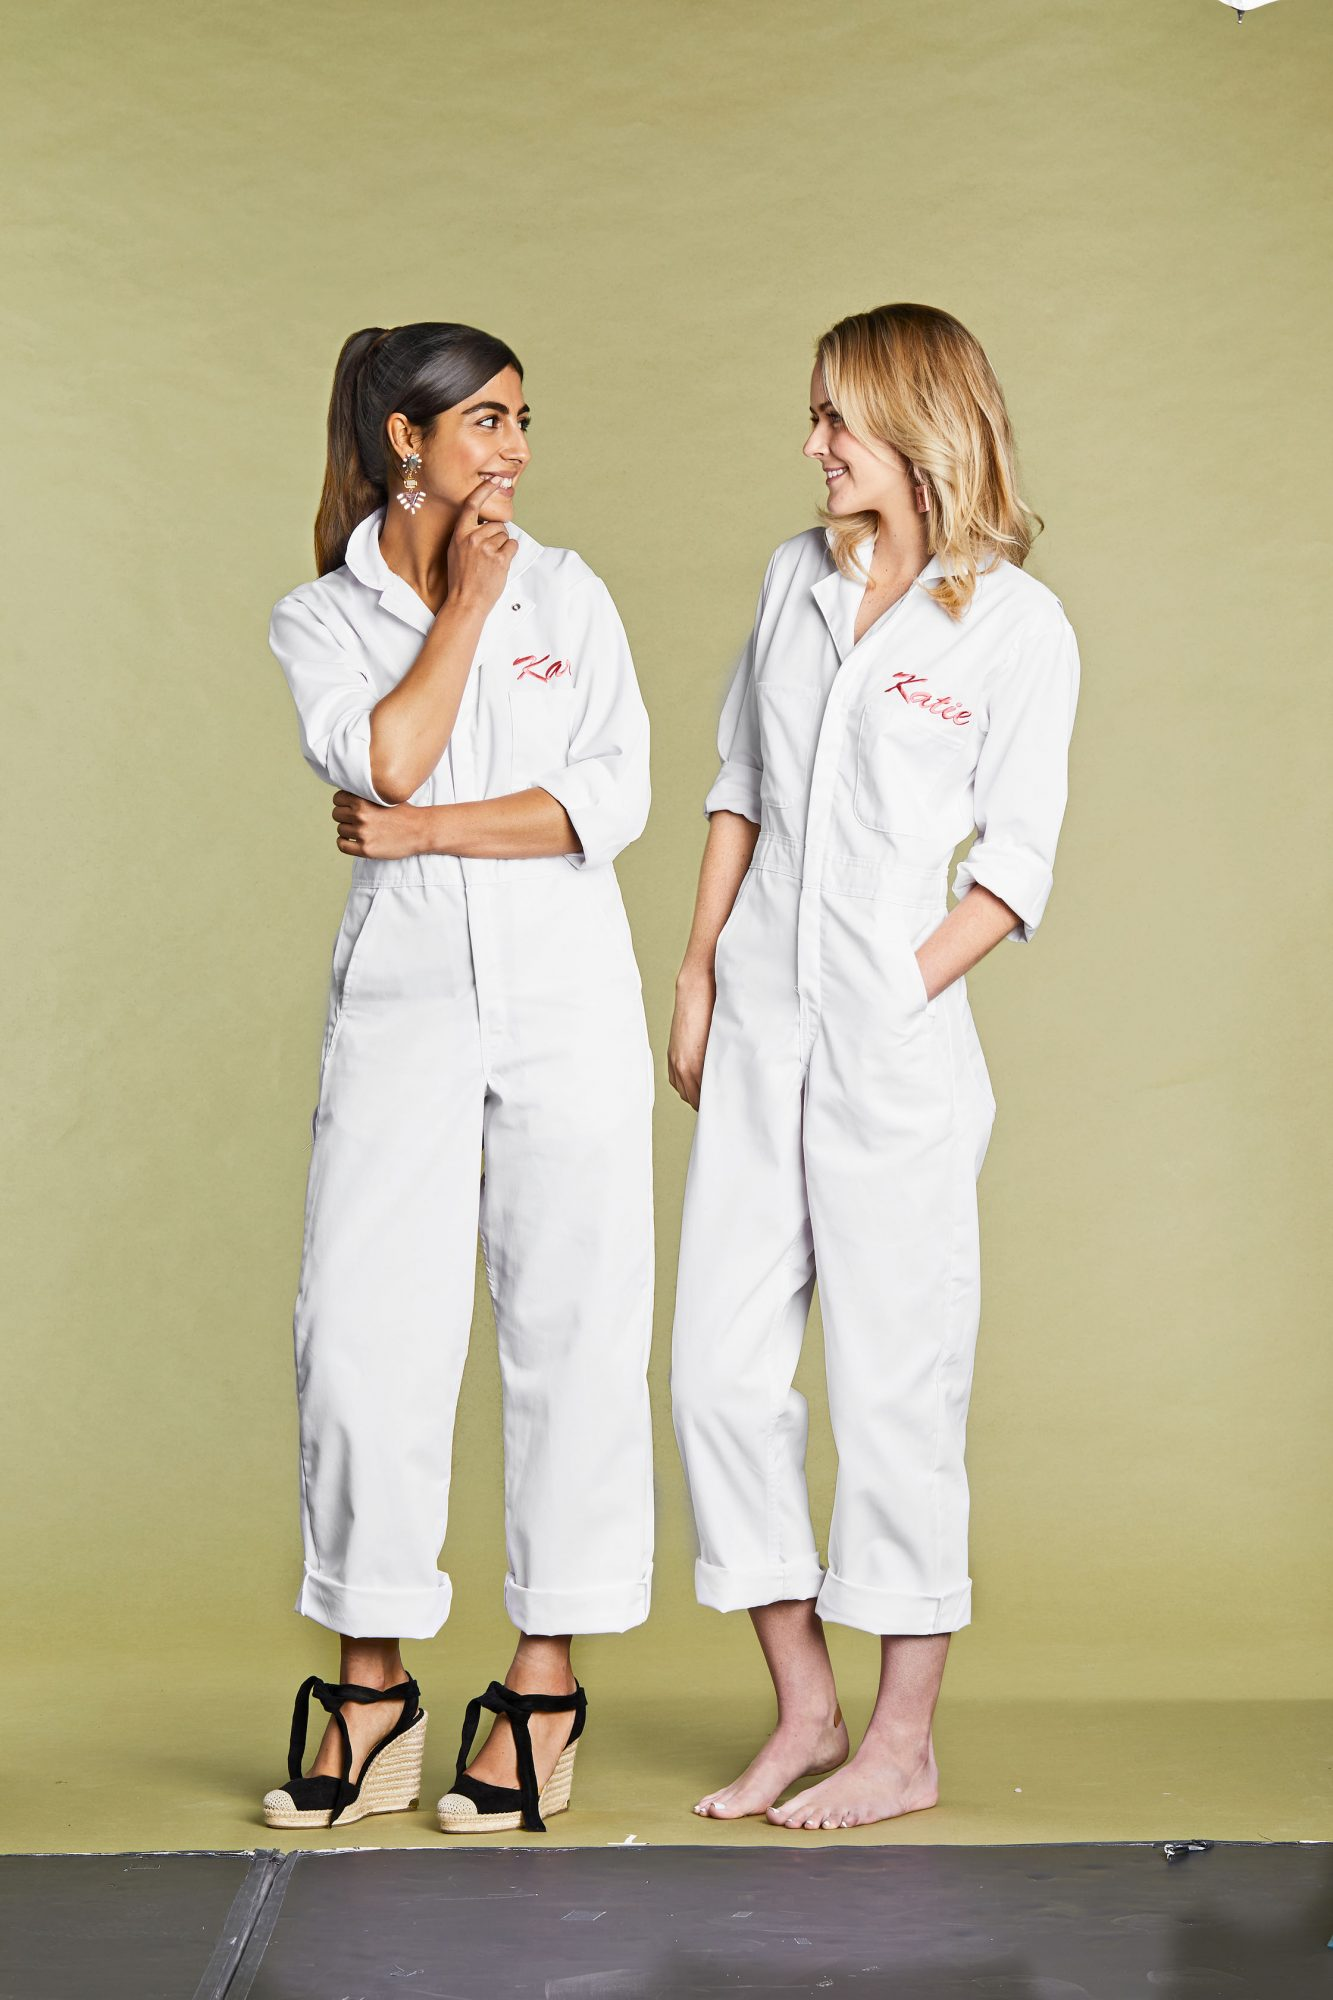 Make your crew stand out with '80s-inspired ensembles. Retro coveralls are easily customizable—just embroider your names on them.